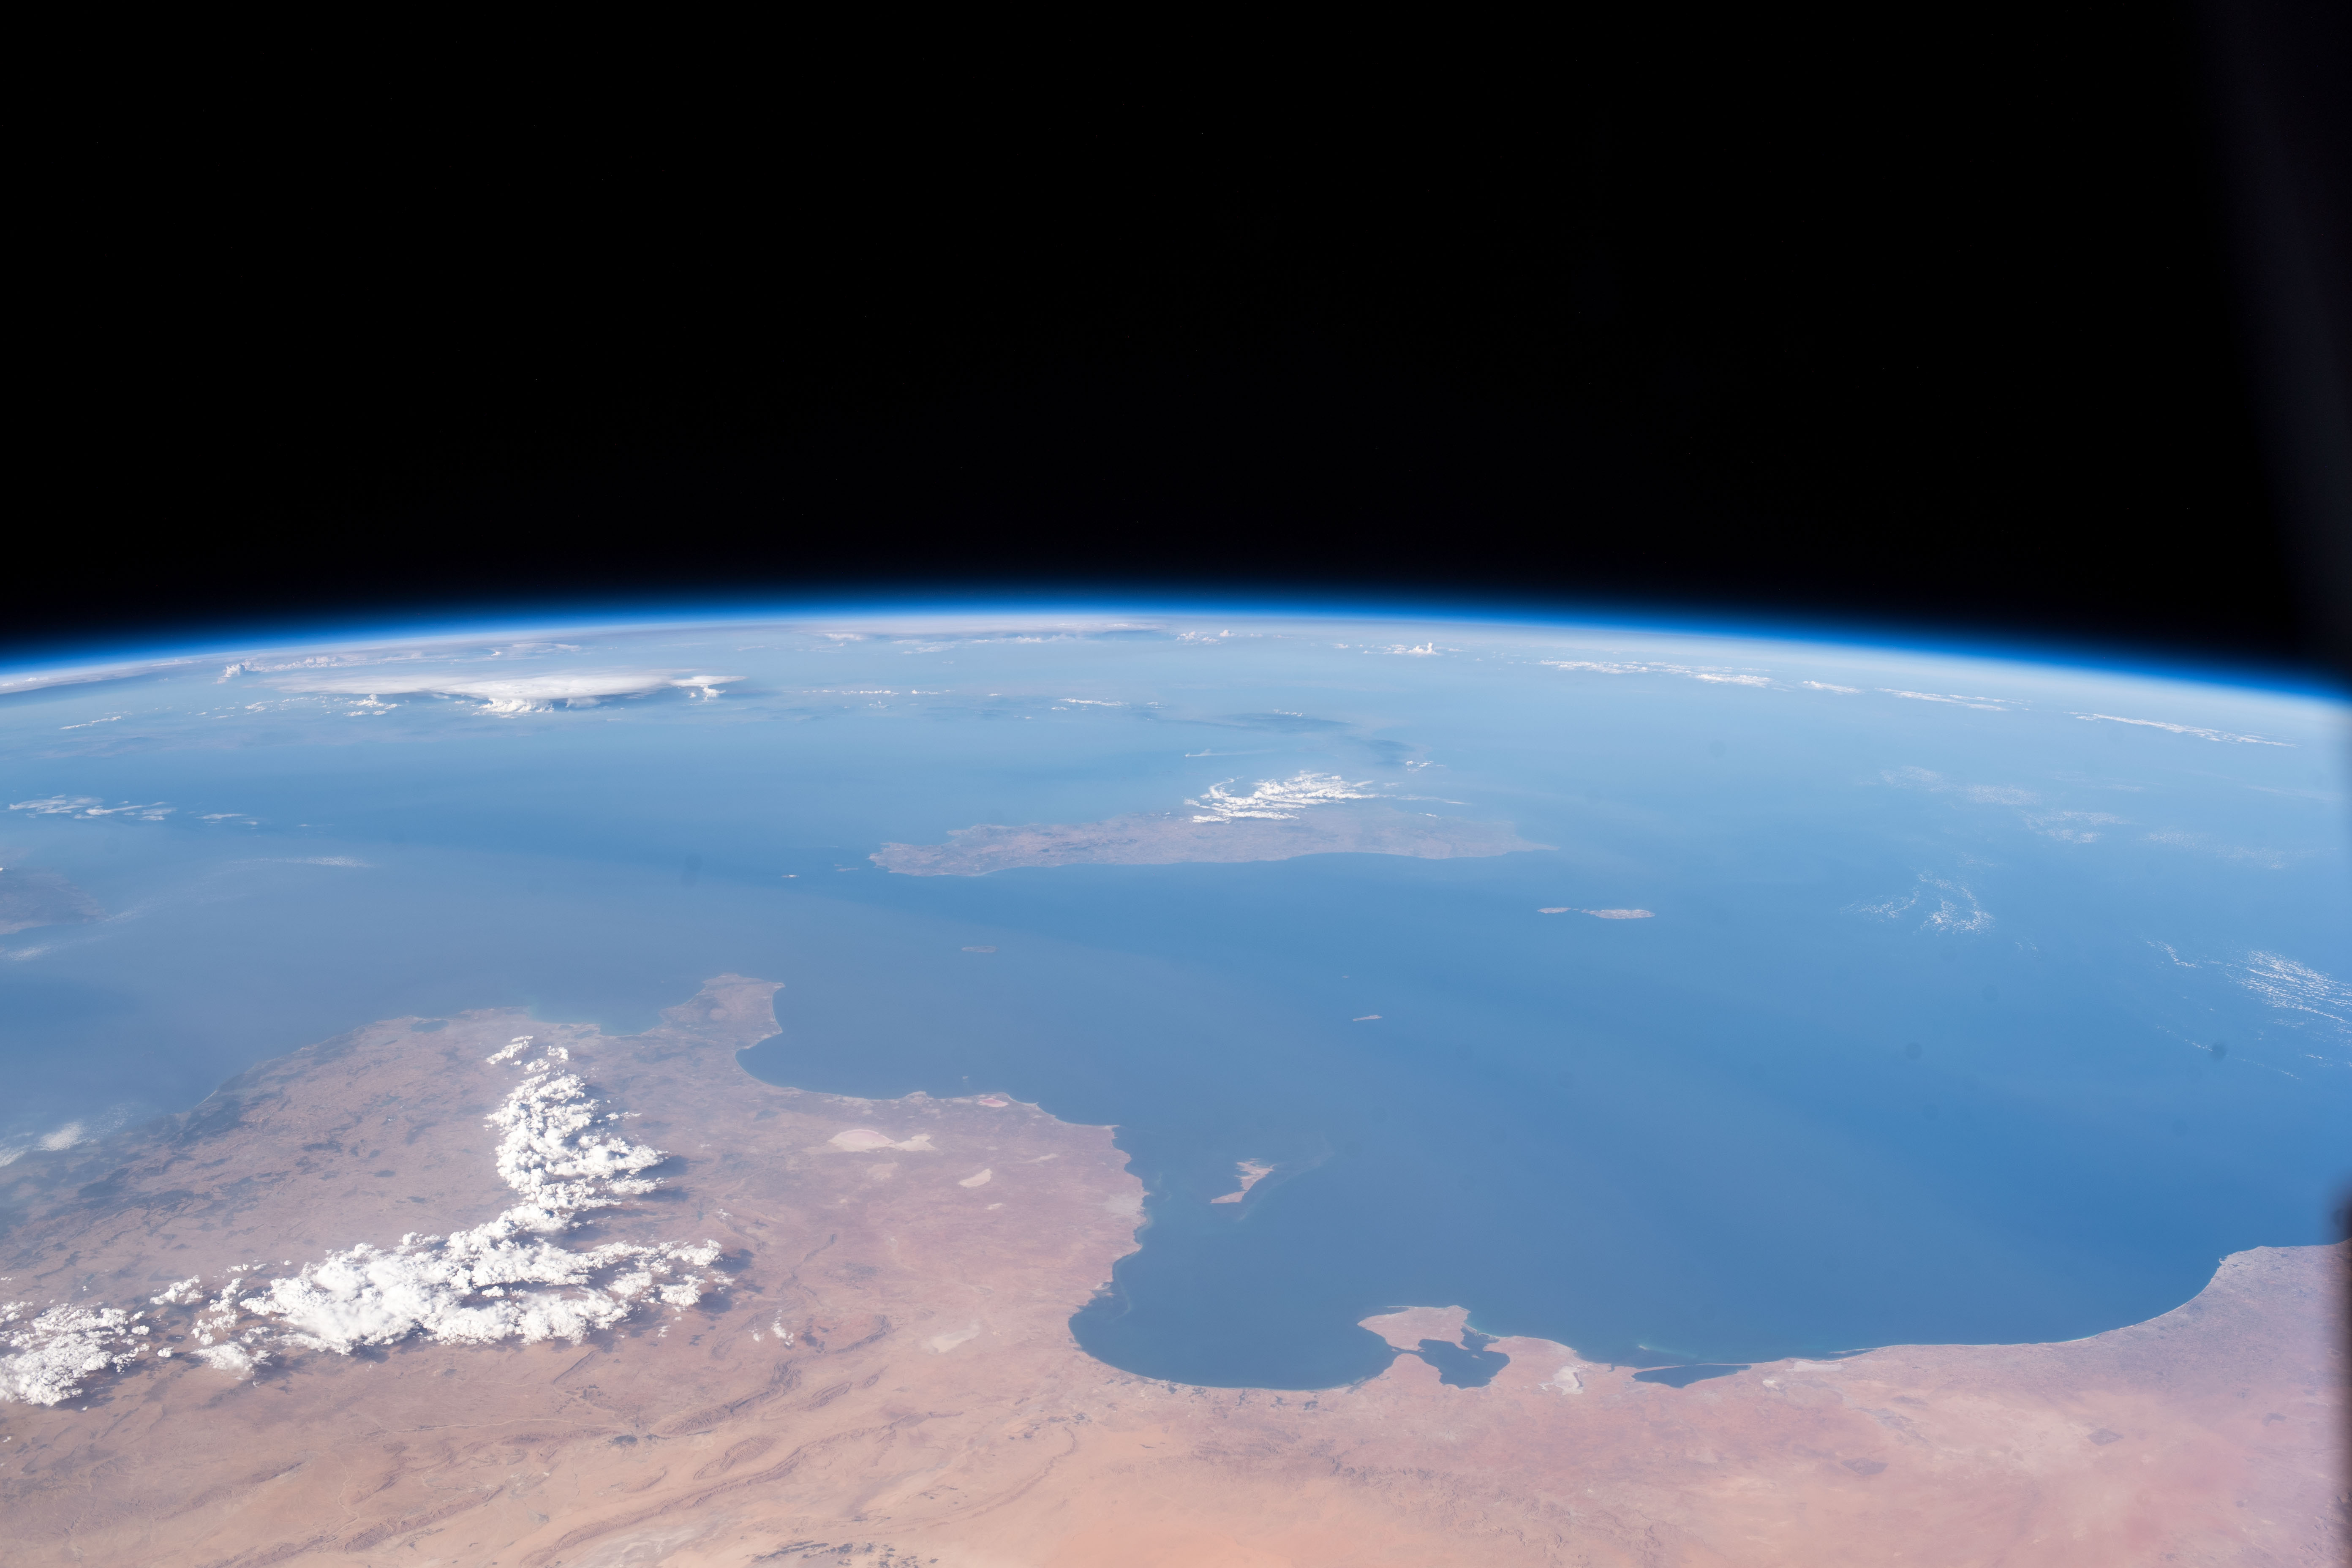 Viewing the Mediterranean Coasts of Tunisia and Libya from the Space Station